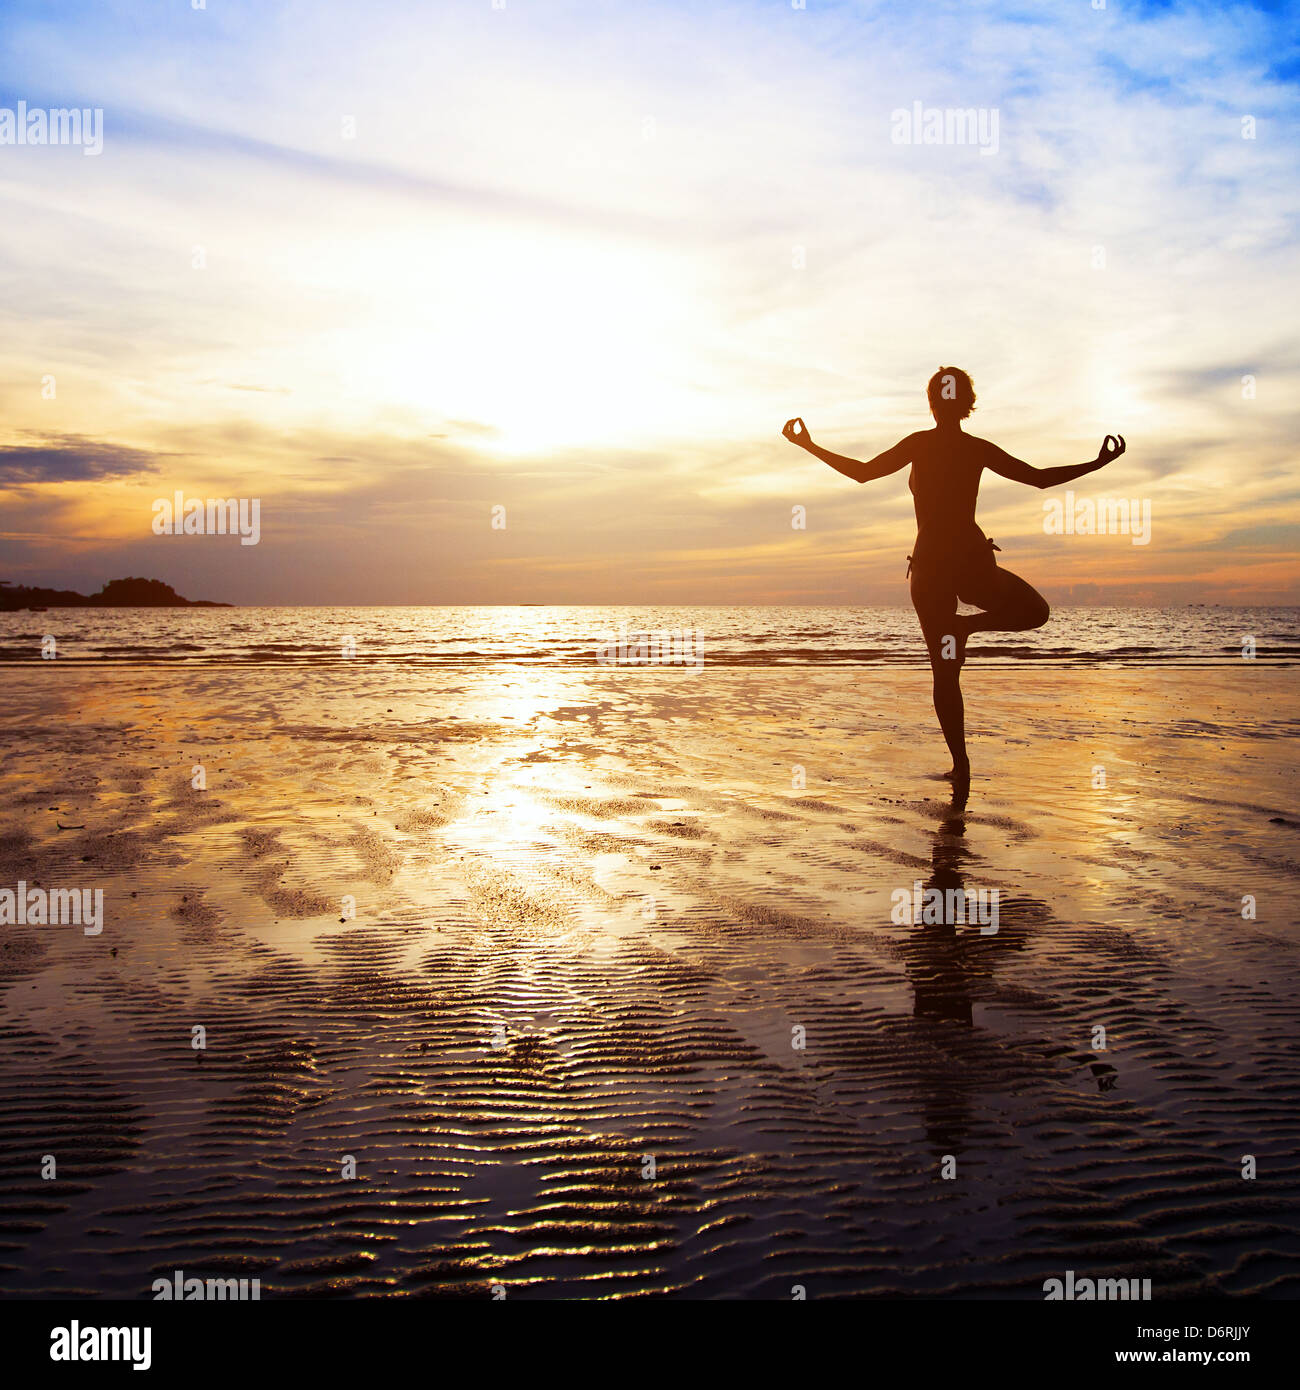 well being concept, beautiful sunset on the beach, woman practicing yoga - Stock Image